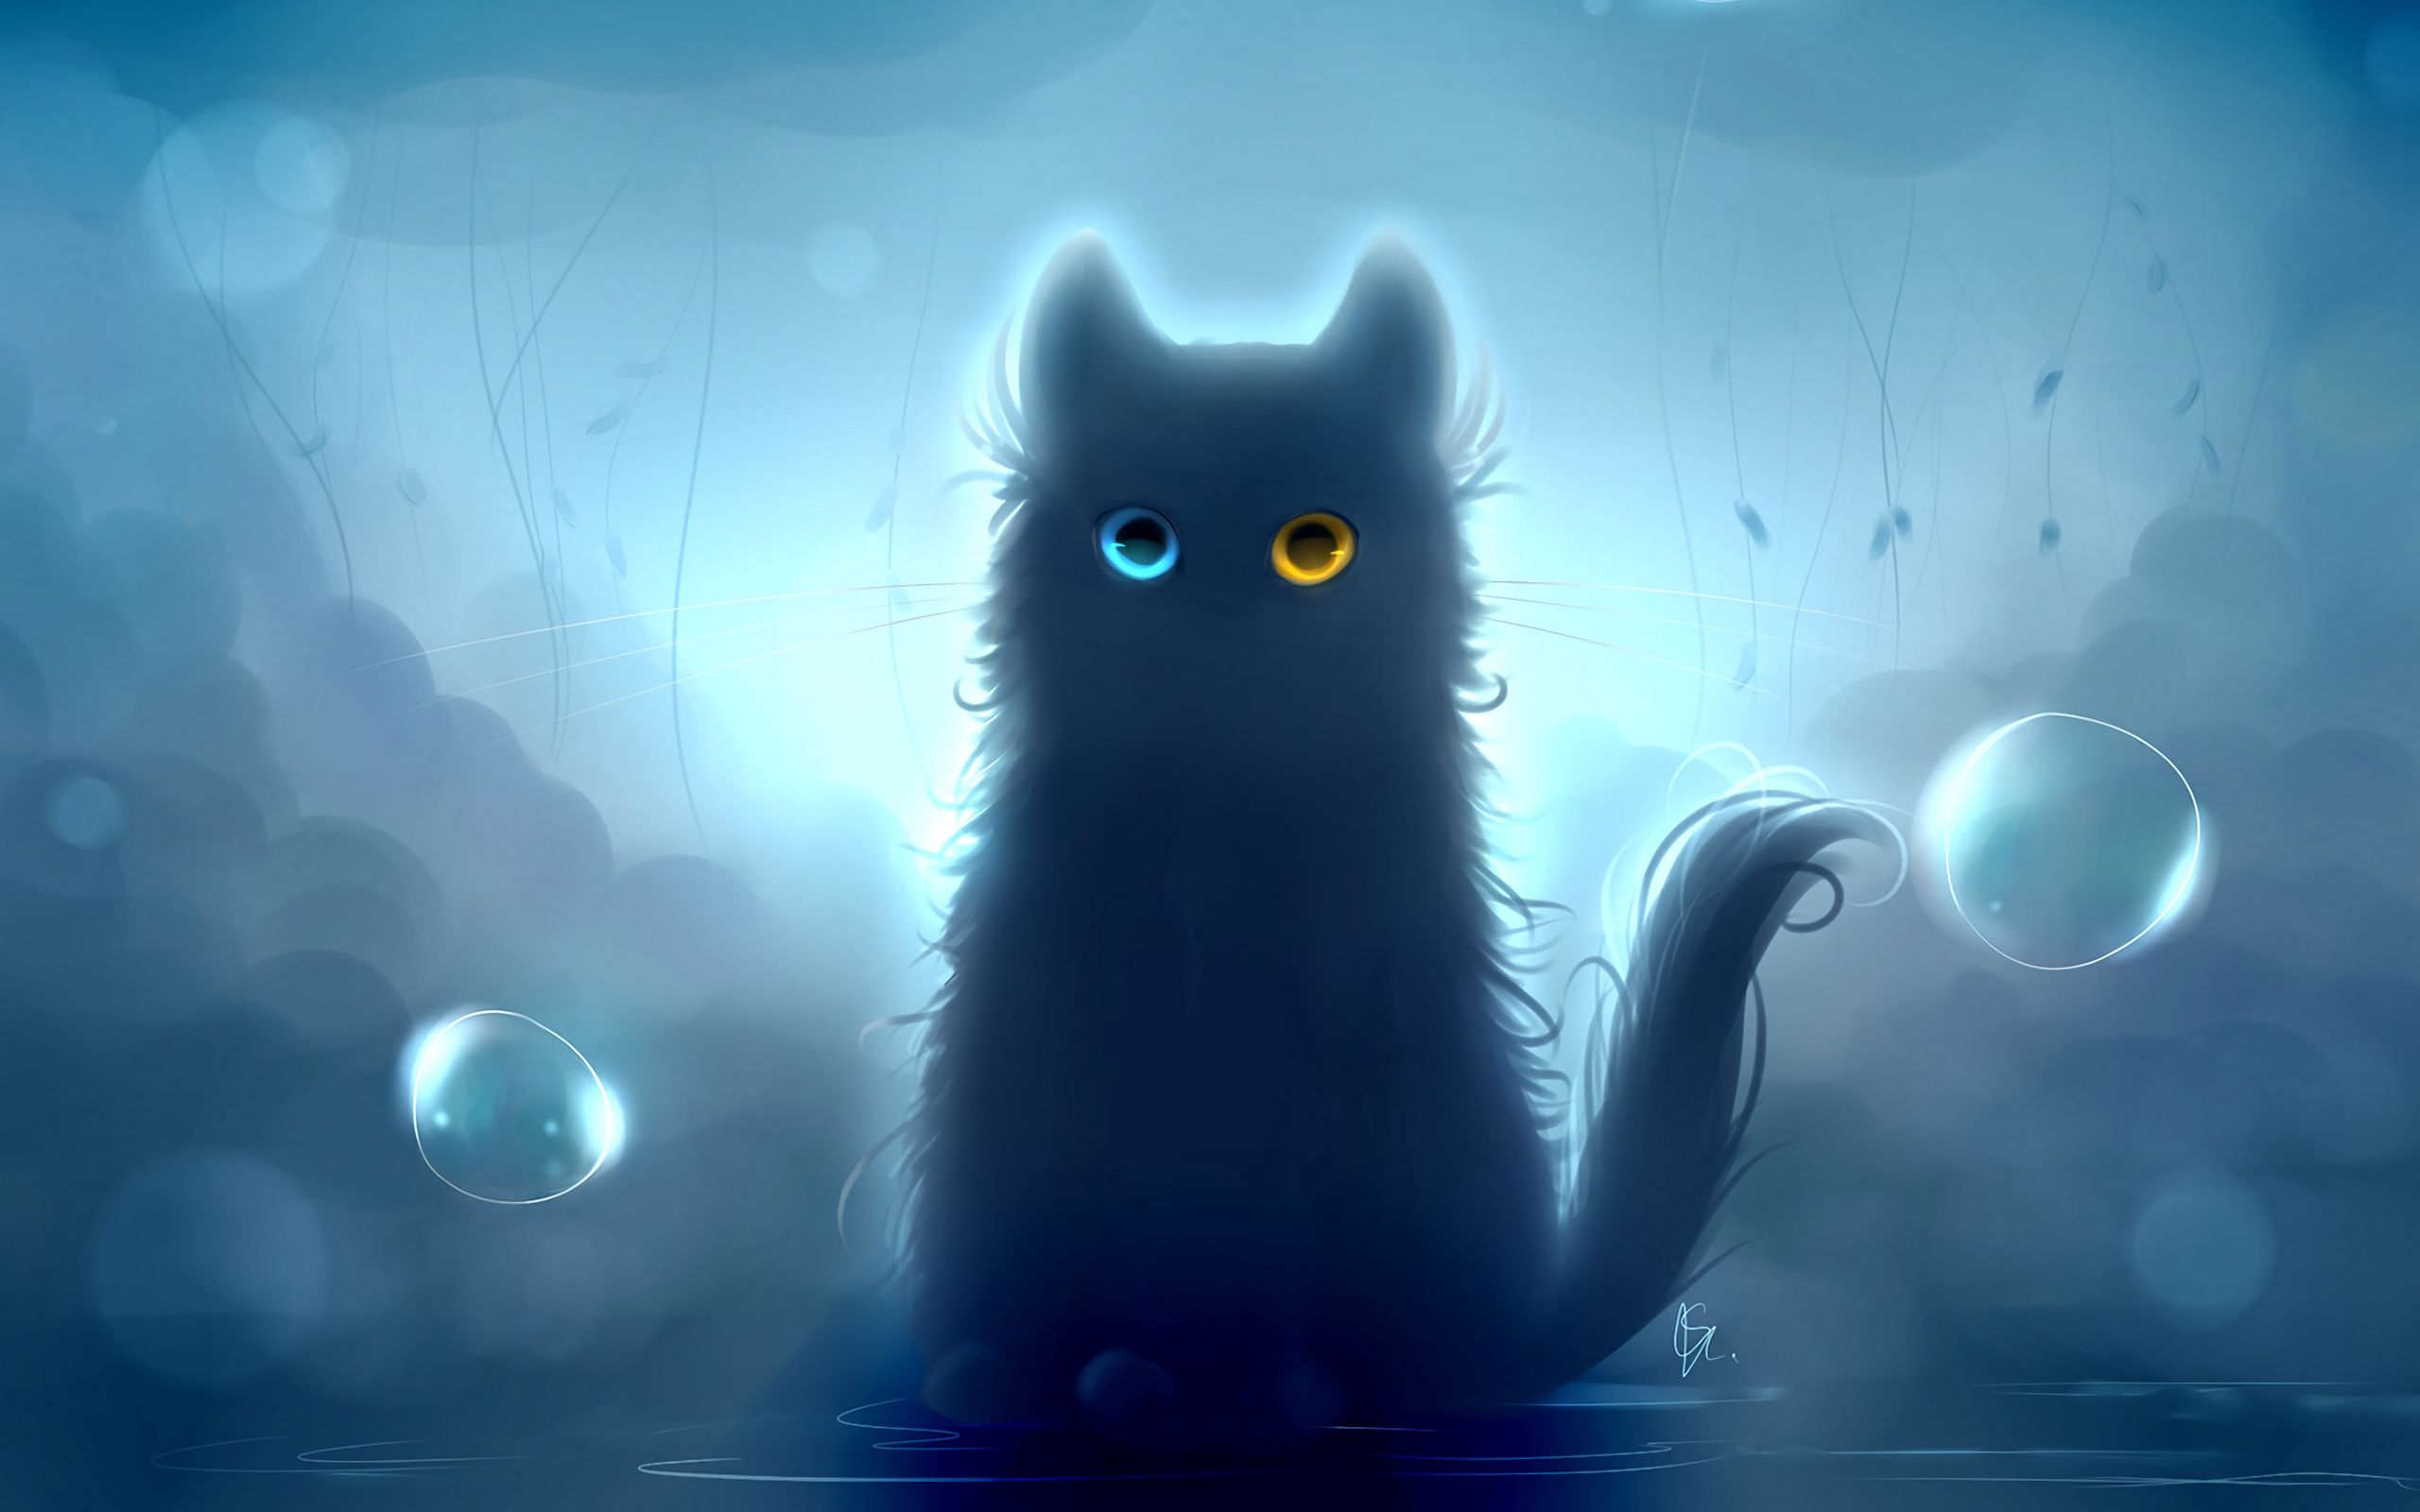 Anime Black Wallpaper Cat Black Cat Art Art Wallpaper Cat Wallpaper